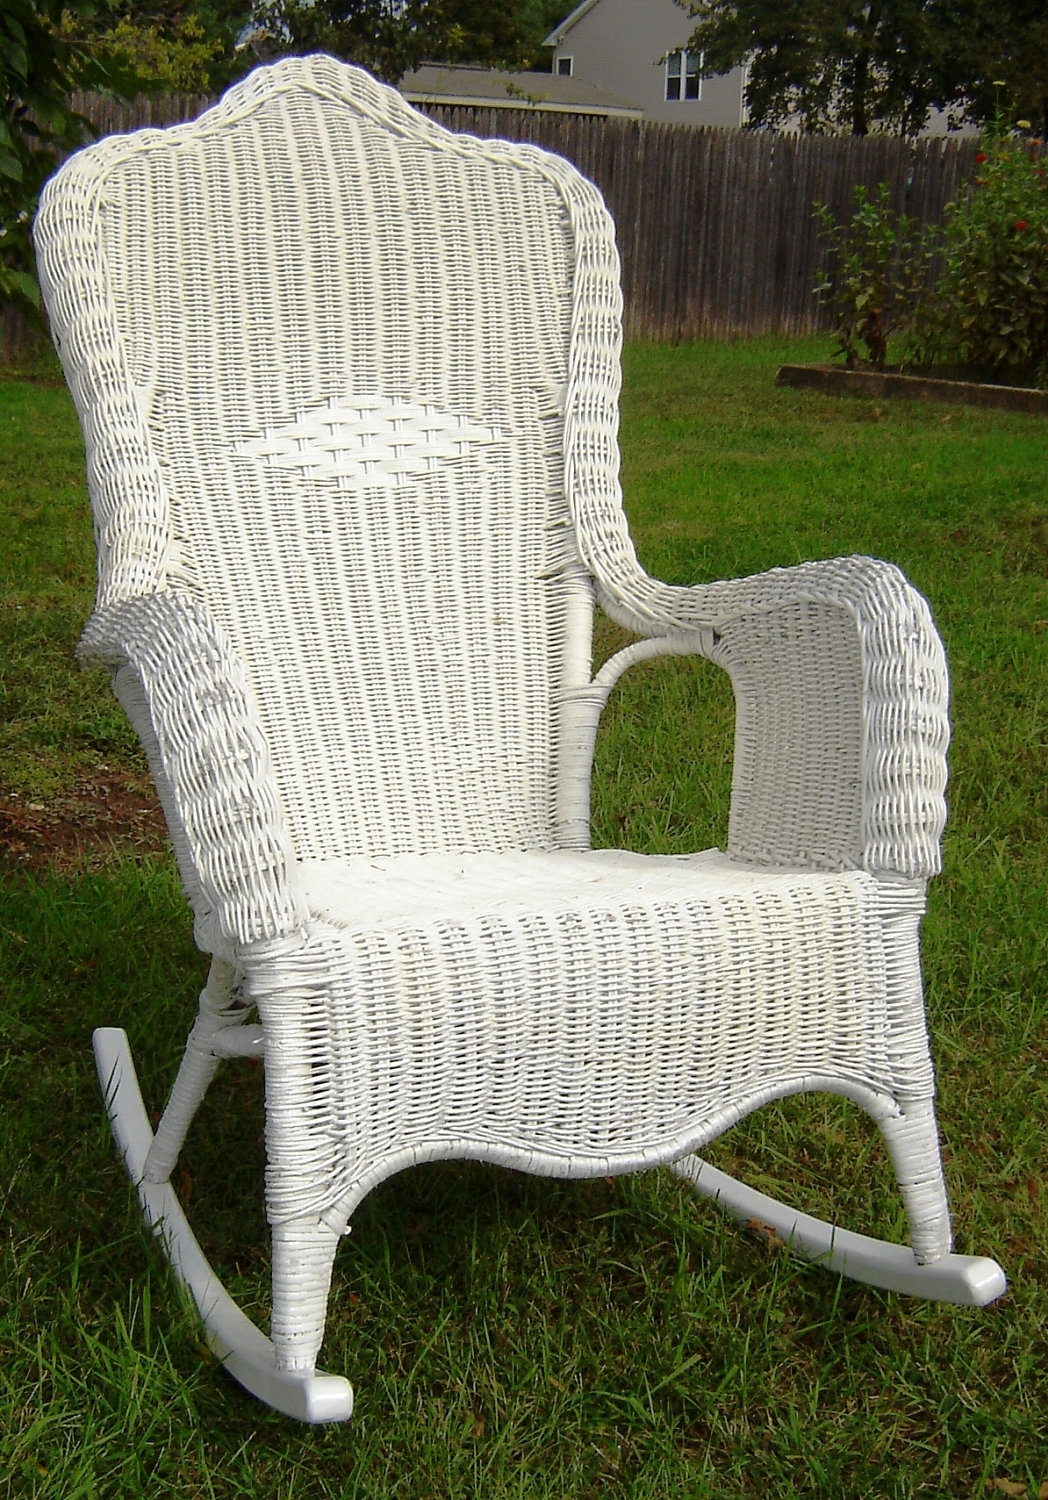 Chair Design Ideas Best Vintage Wicker Chairs Home Antique Cane Within Well Liked Antique Wicker Rocking Chairs With Springs (View 15 of 15)